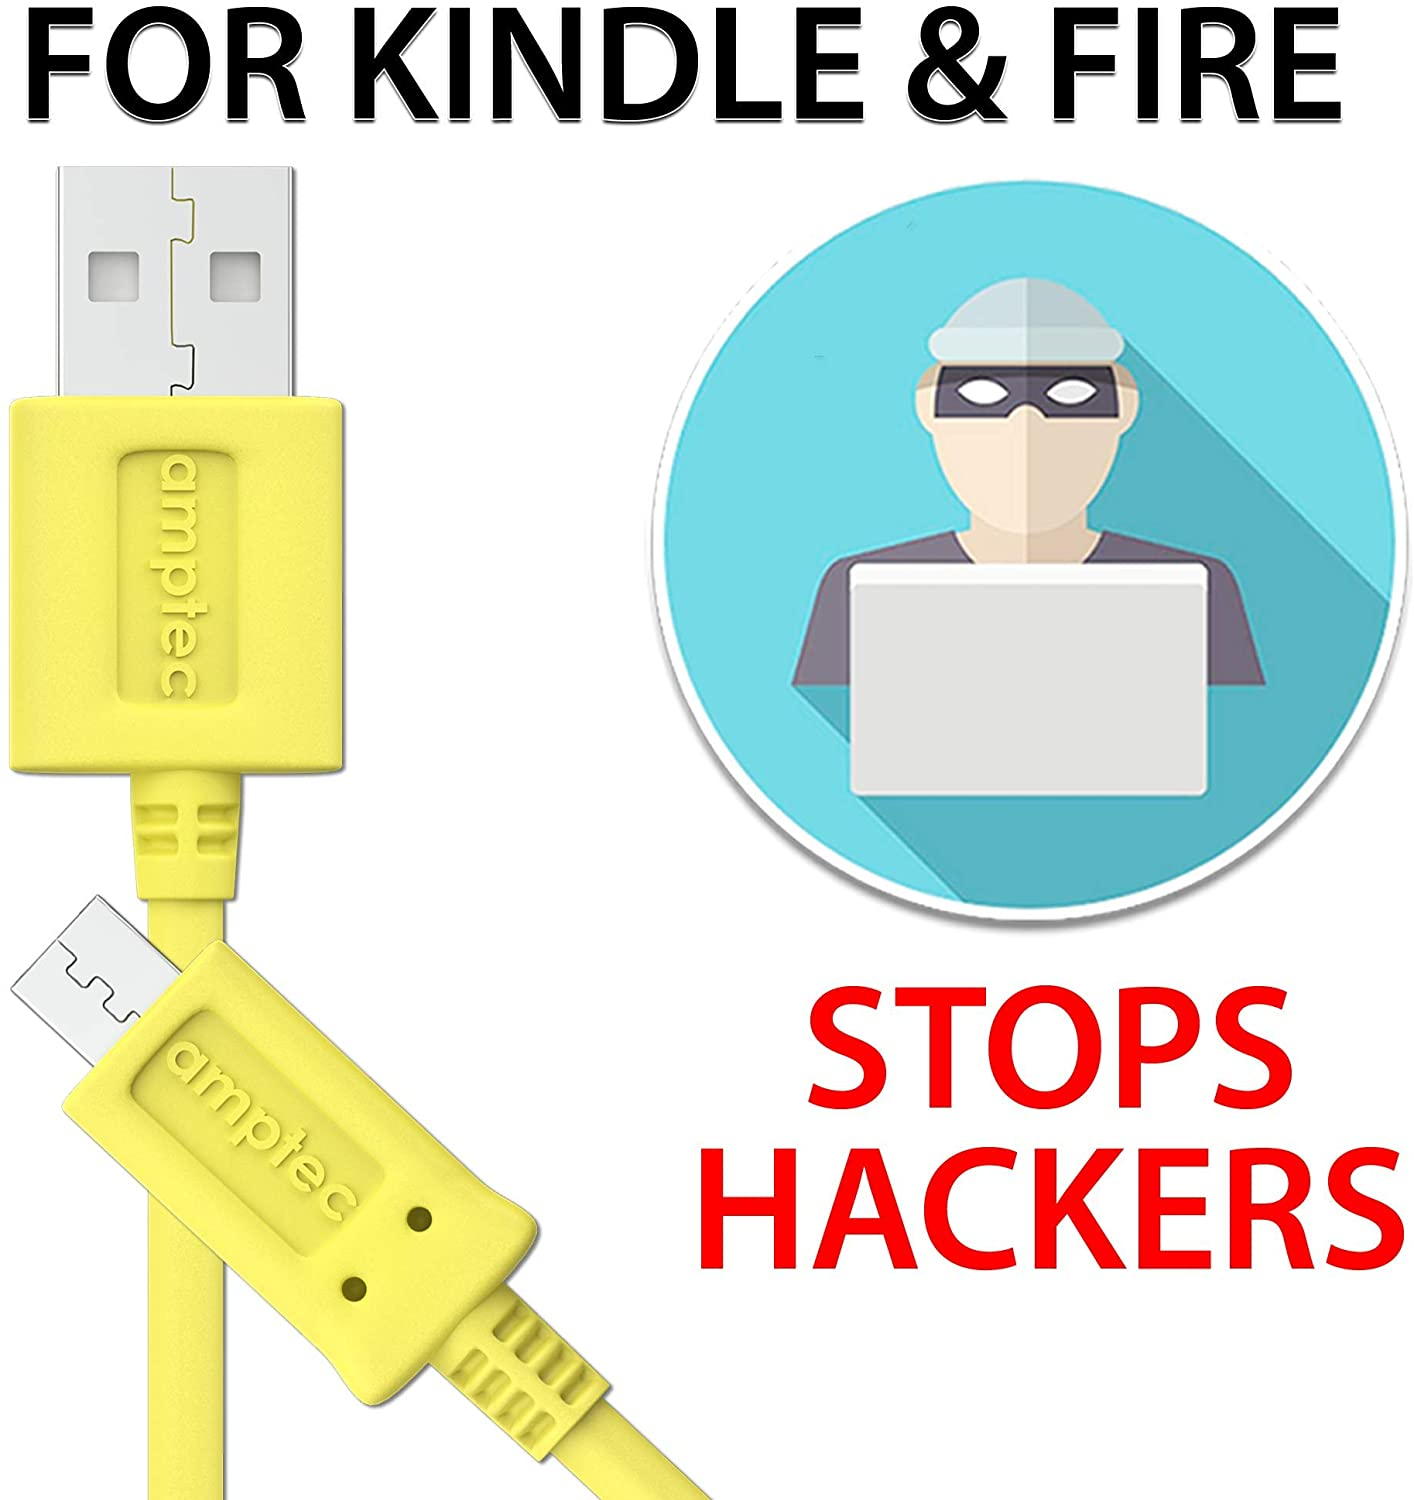 Kindle Fire Charger Cord Replacement Fast Charging Micro USB Cable - Supports All Kindle E-Readers, Kindle, Paperwhite, Oasis, Fire 7, Fire HD 8 and Any Micro USB Devices (1 Pack)